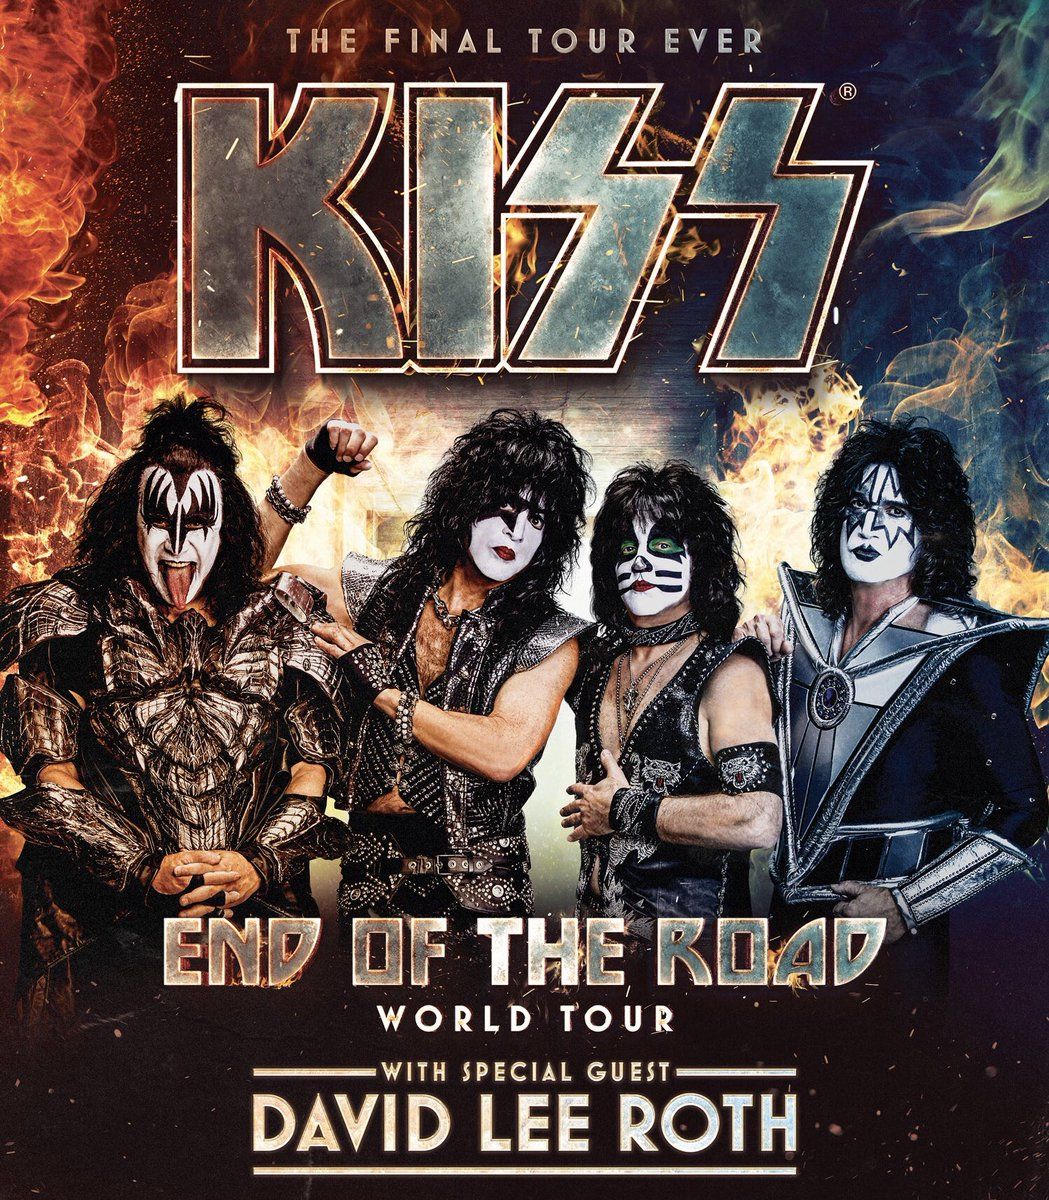 Kicking off on February 1st in Manchester, NH #kissendoftheroadtour